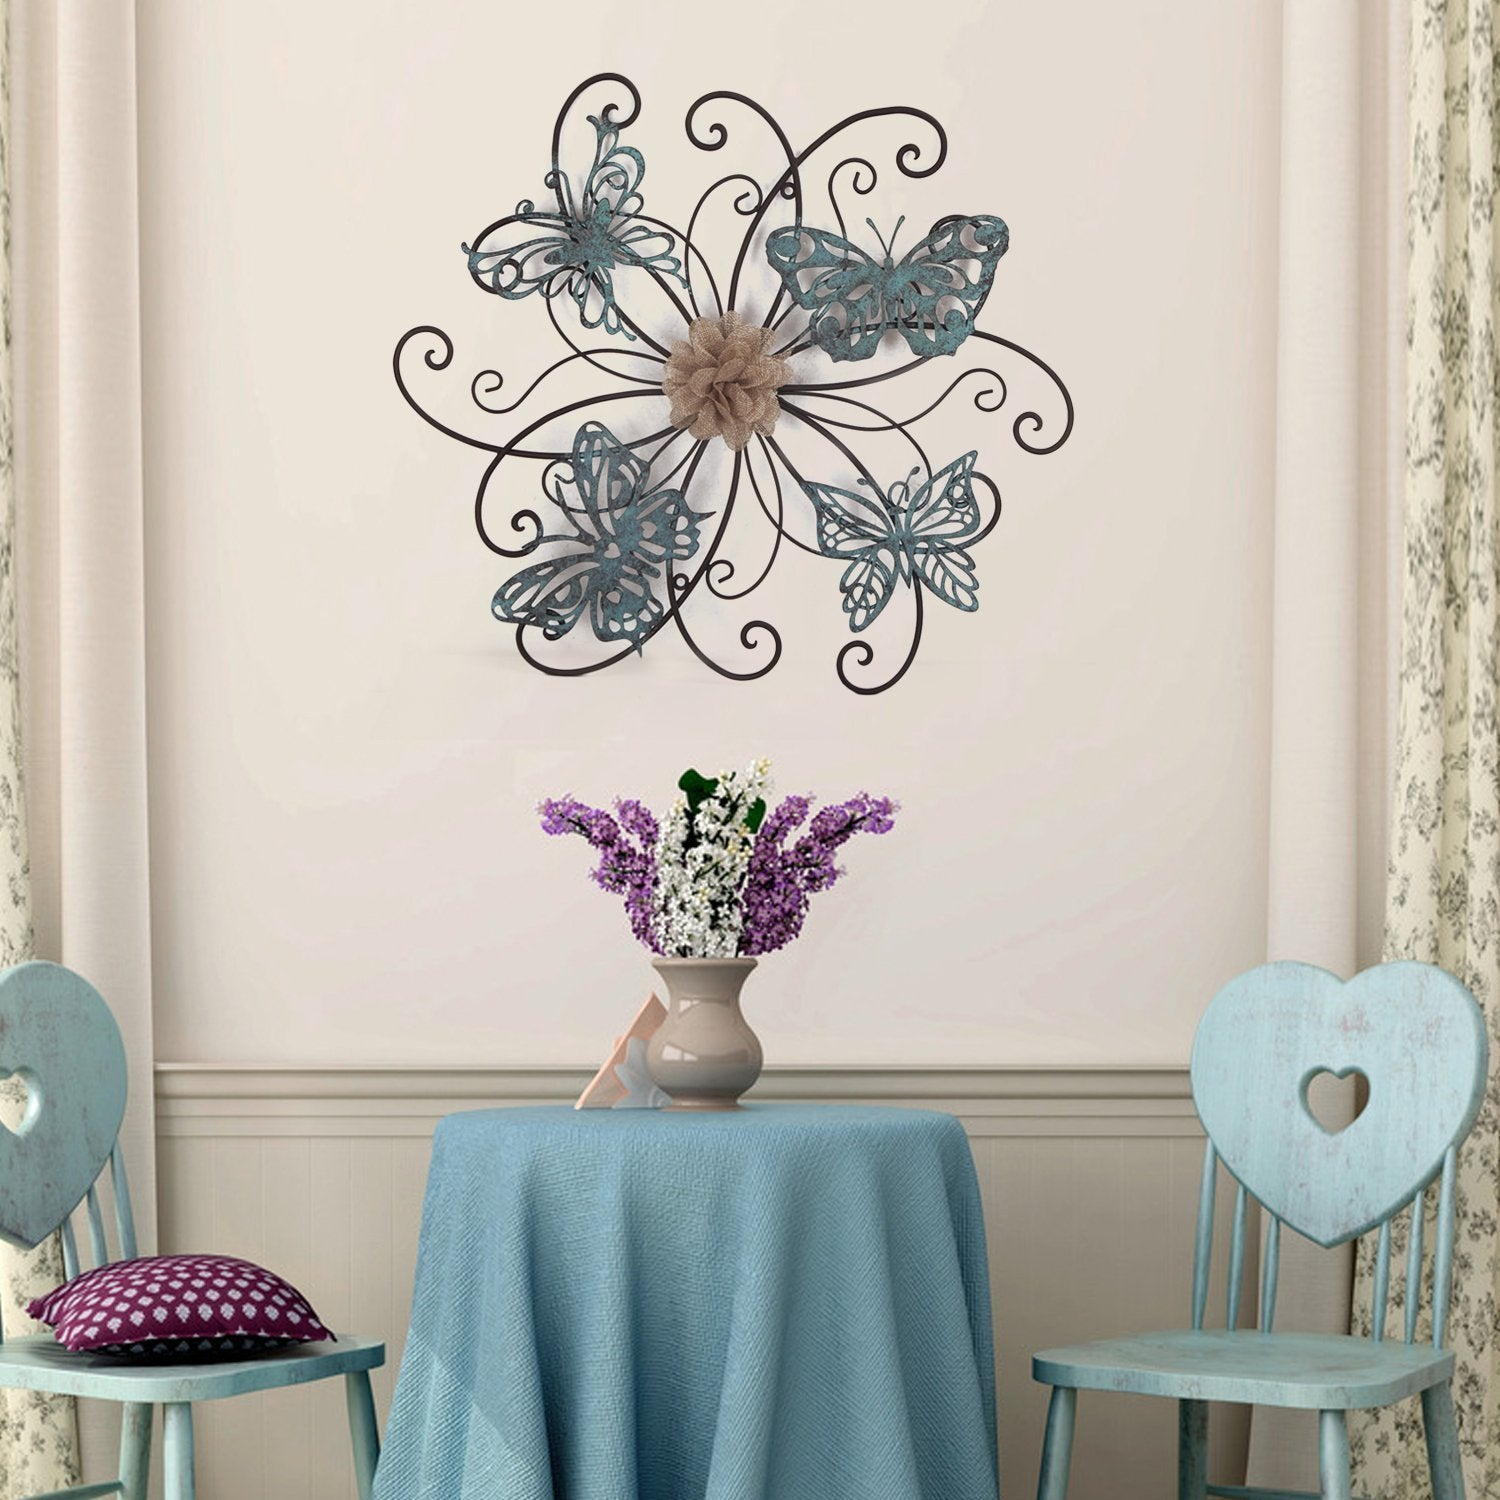 Details About Adeco Flower And Butterfly Urban Design Metal Wall Decor For  Nature Home Art in Flower Urban Design Metal Wall Decor (Image 11 of 30)